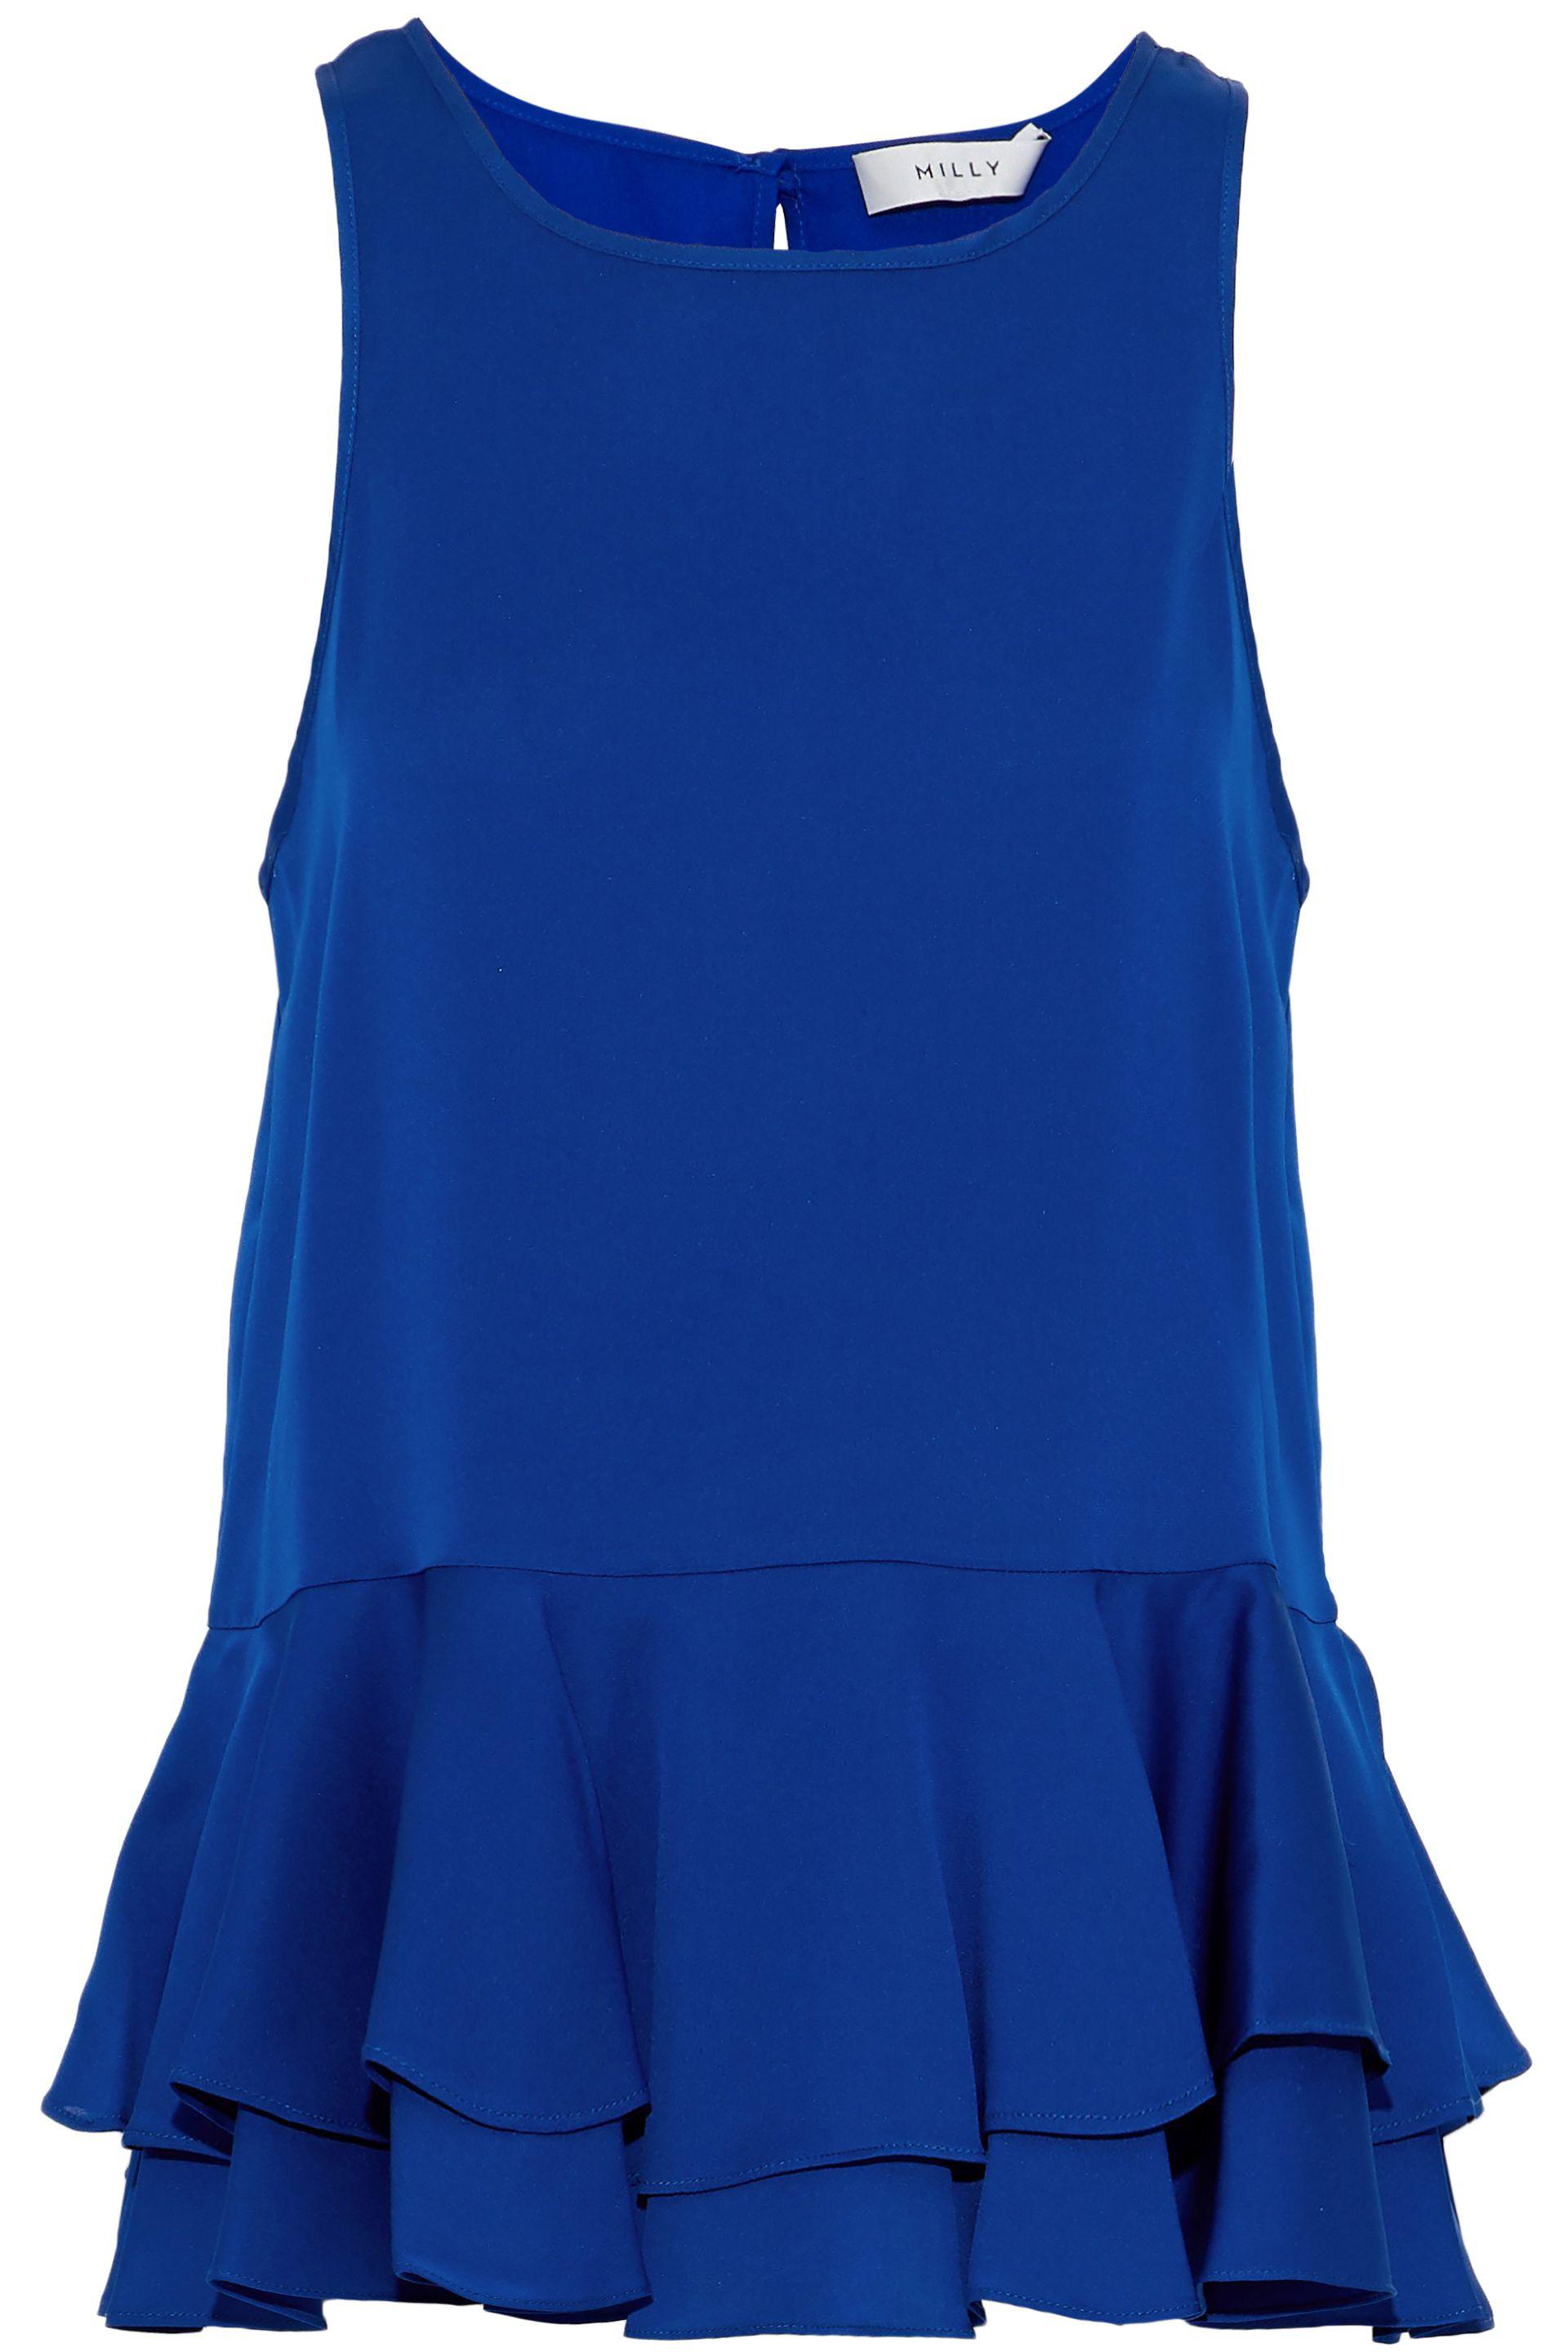 Milly Woman Ruffled Stretch-silk Crepe De Chine Peplum Blouse Cobalt Blue Size 6 Milly Cheap Sale Outlet Popular Outlet Pre Order a7n1mw